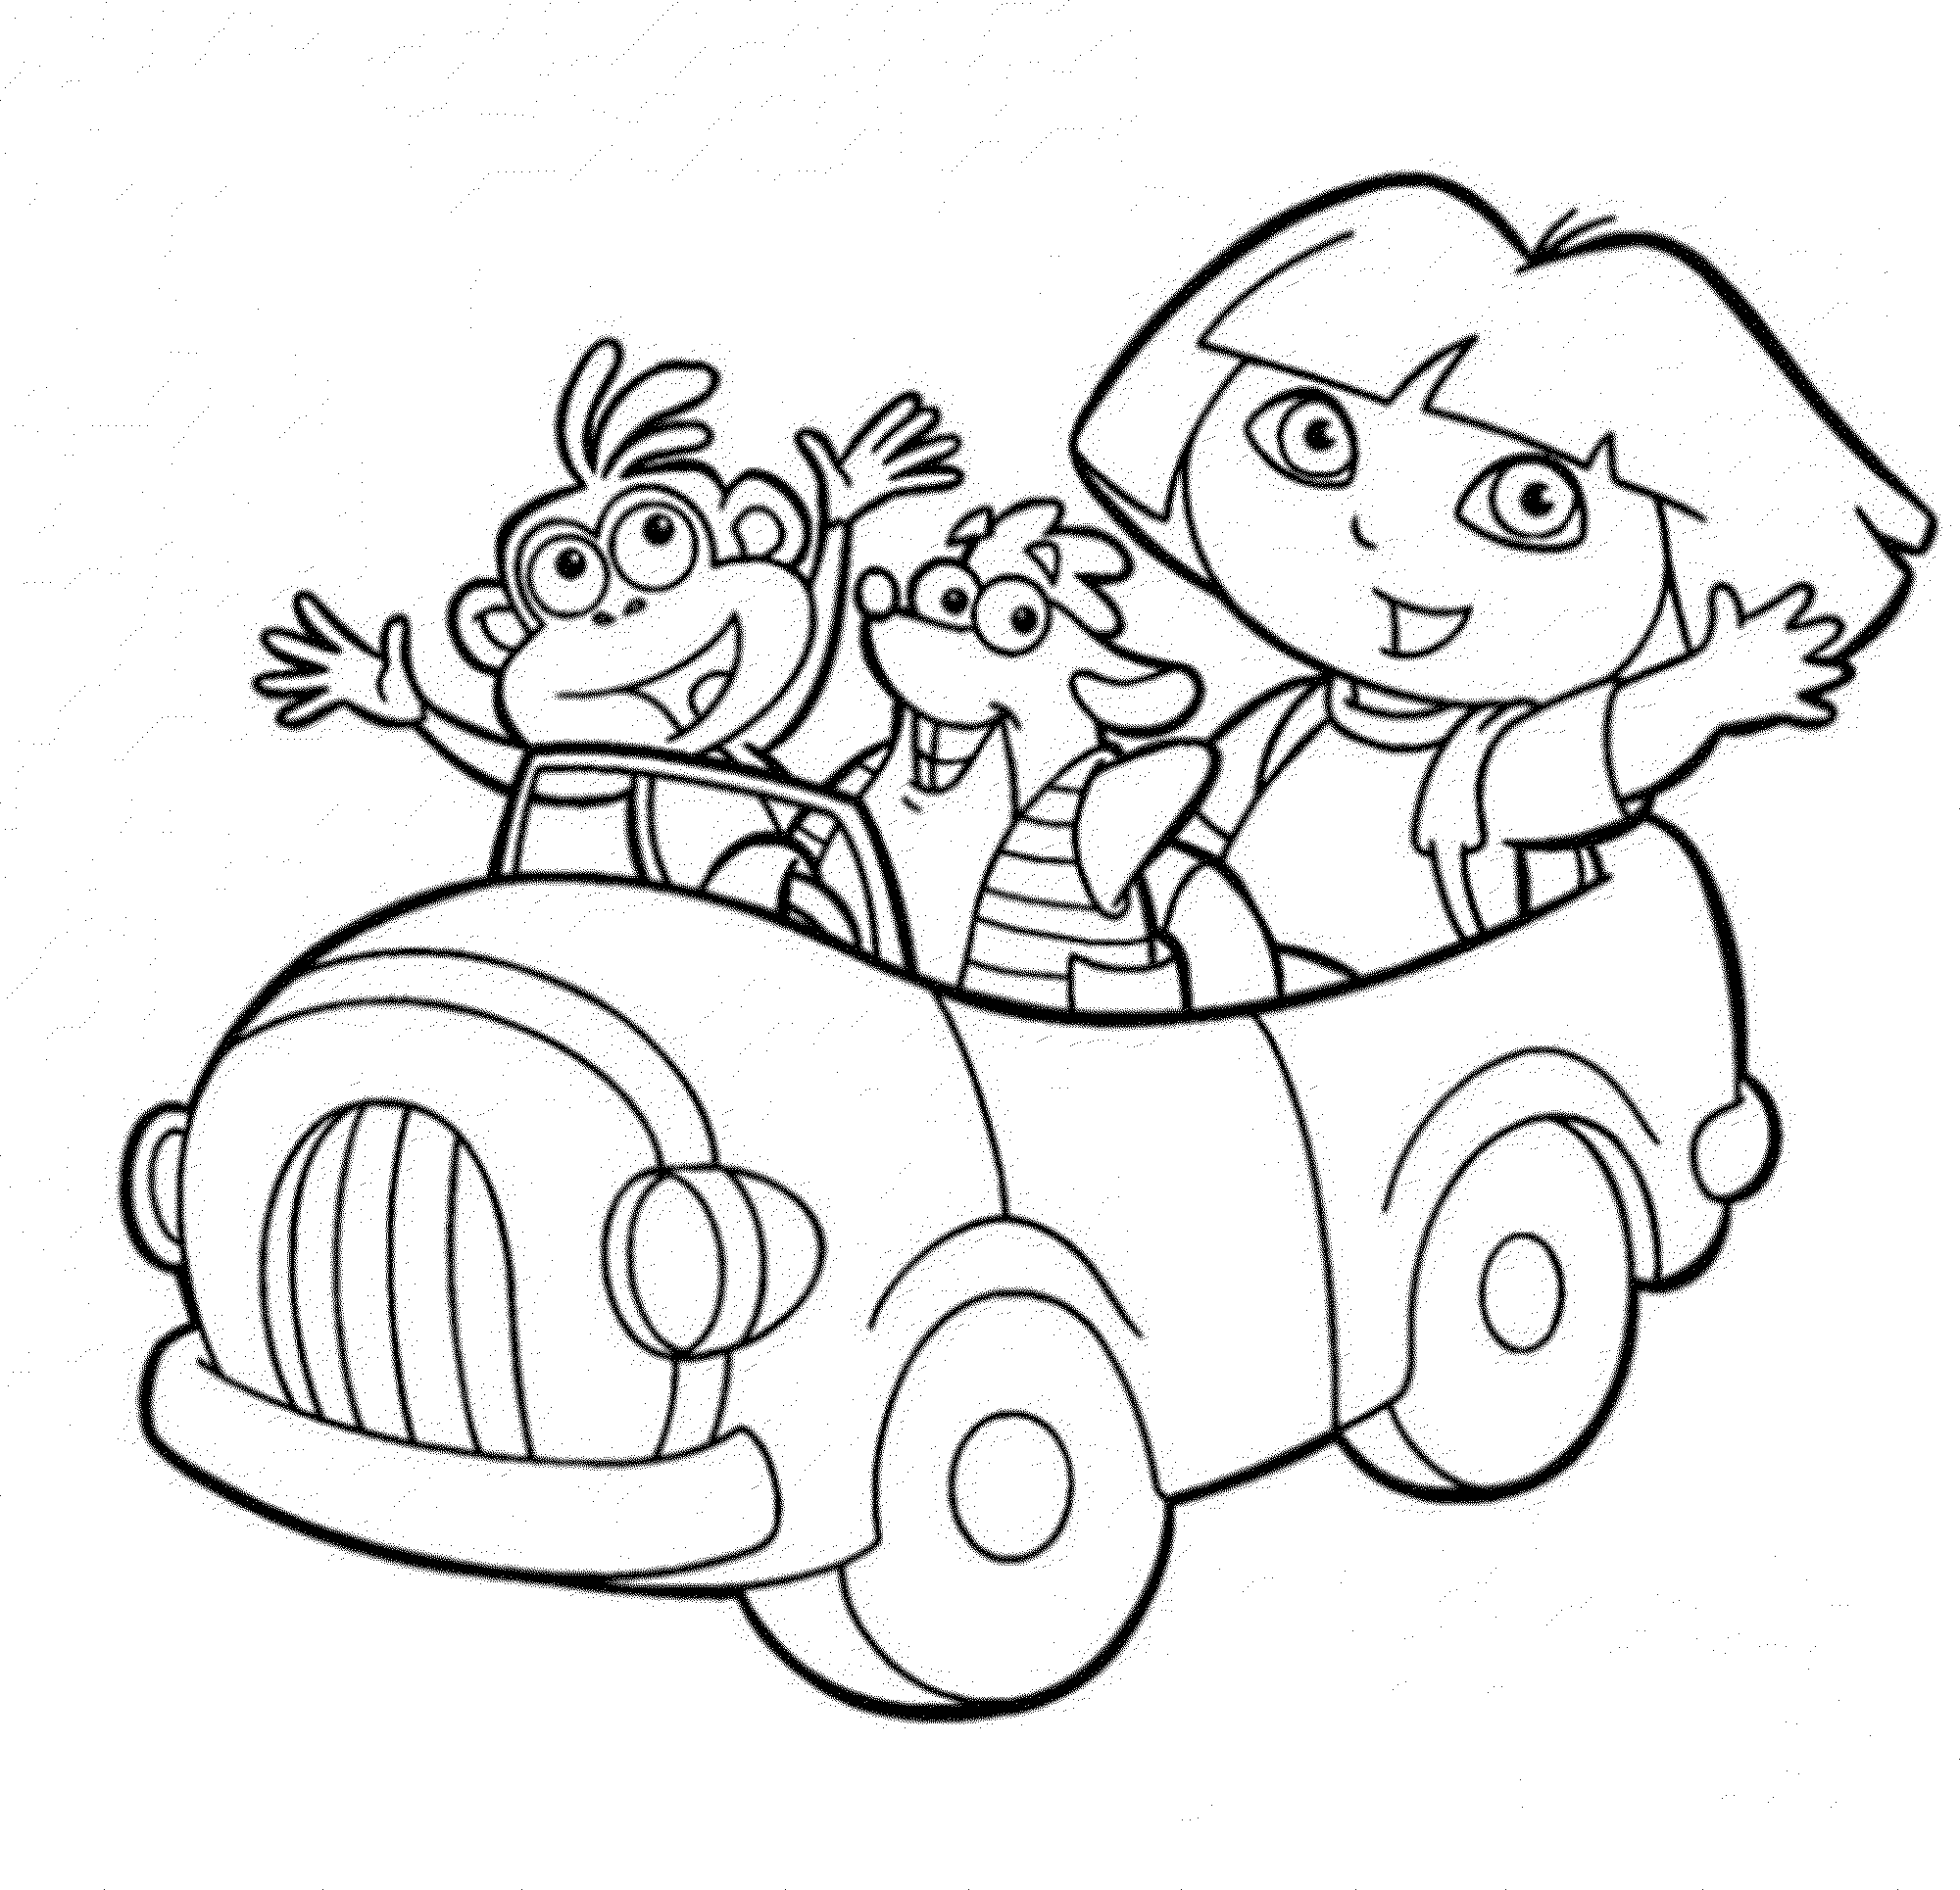 dora colouring pictures print download dora coloring pages to learn new things dora colouring pictures 1 2